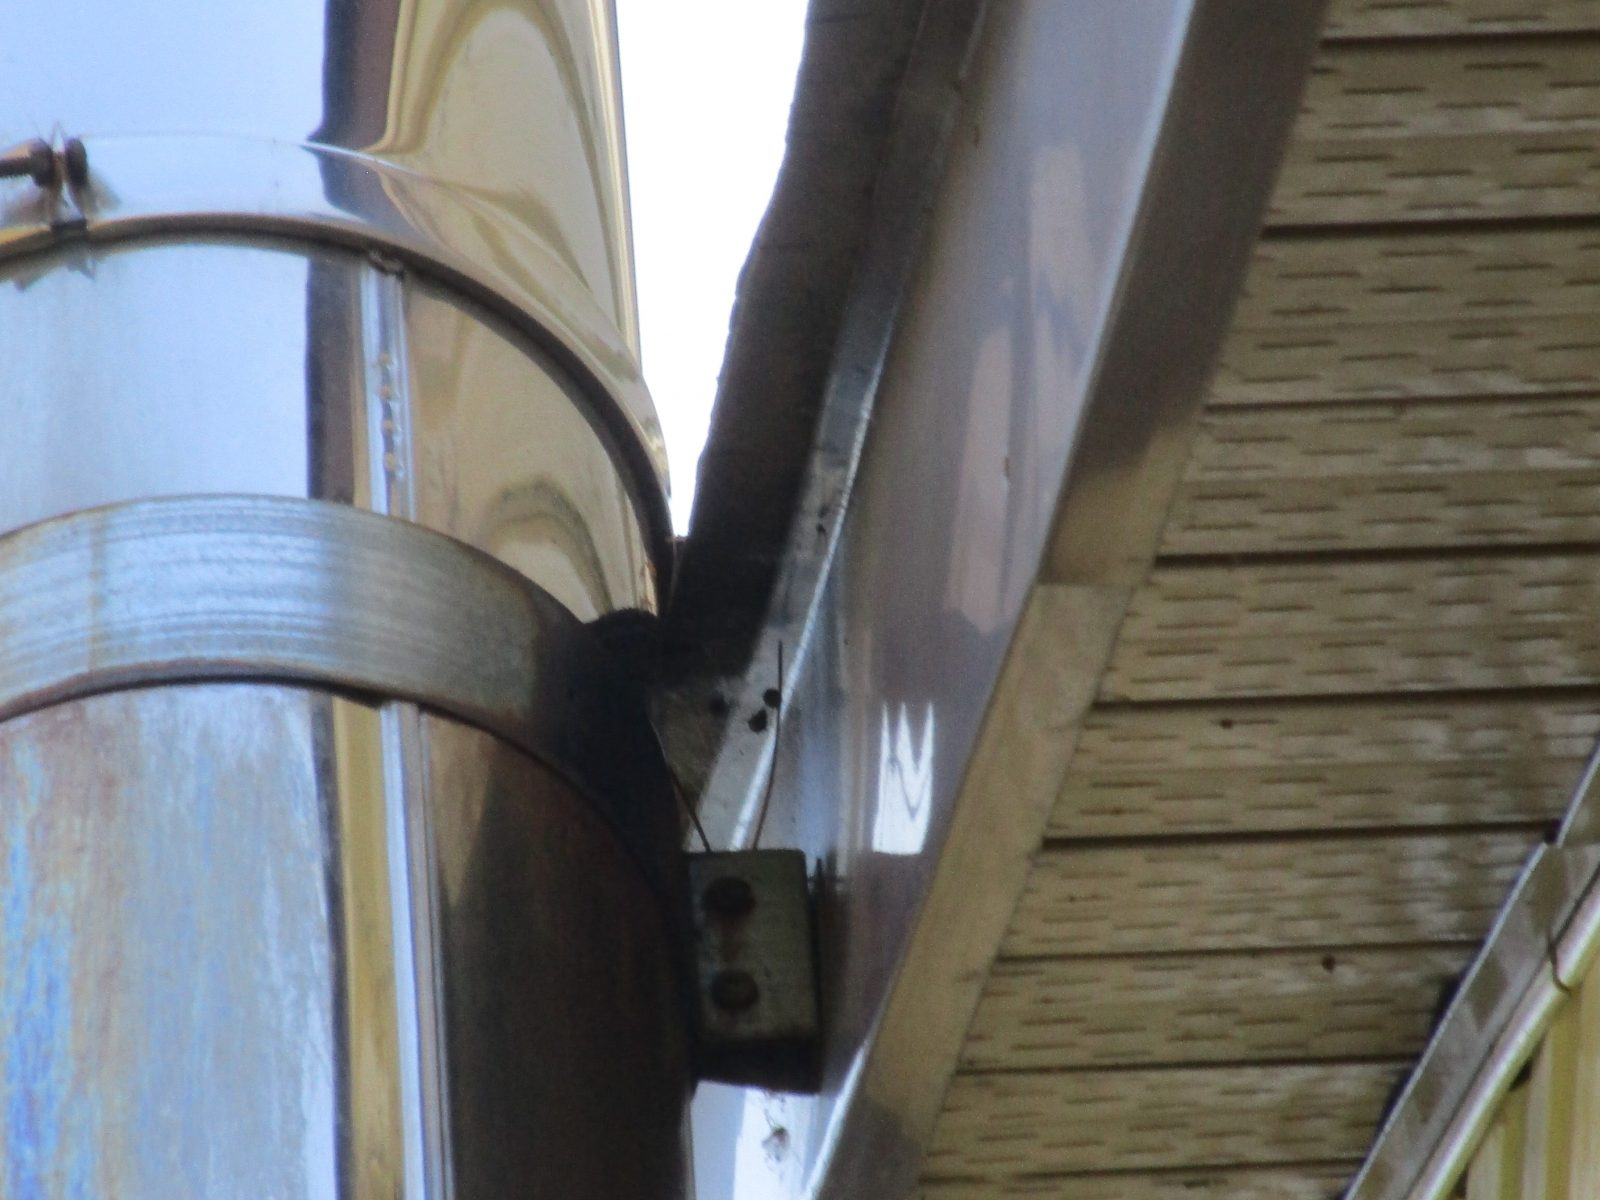 Stainless Steel Chimney Requires 2 inch clearance from shingles.